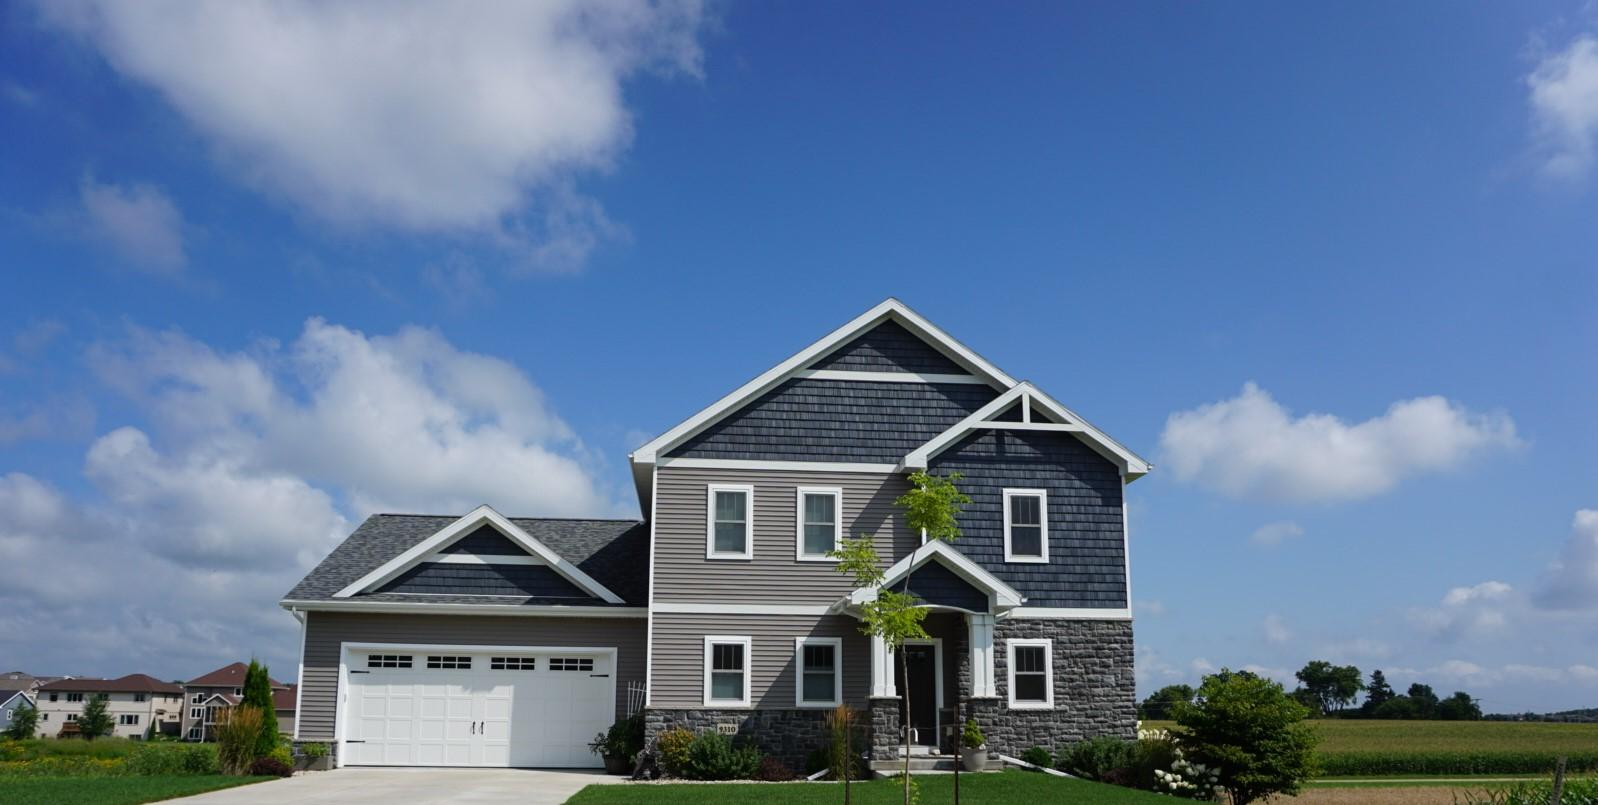 Homes For Sale Middleton Wi >> Woodstone By Midwest Homes Inc New Homes For Sale Middleton